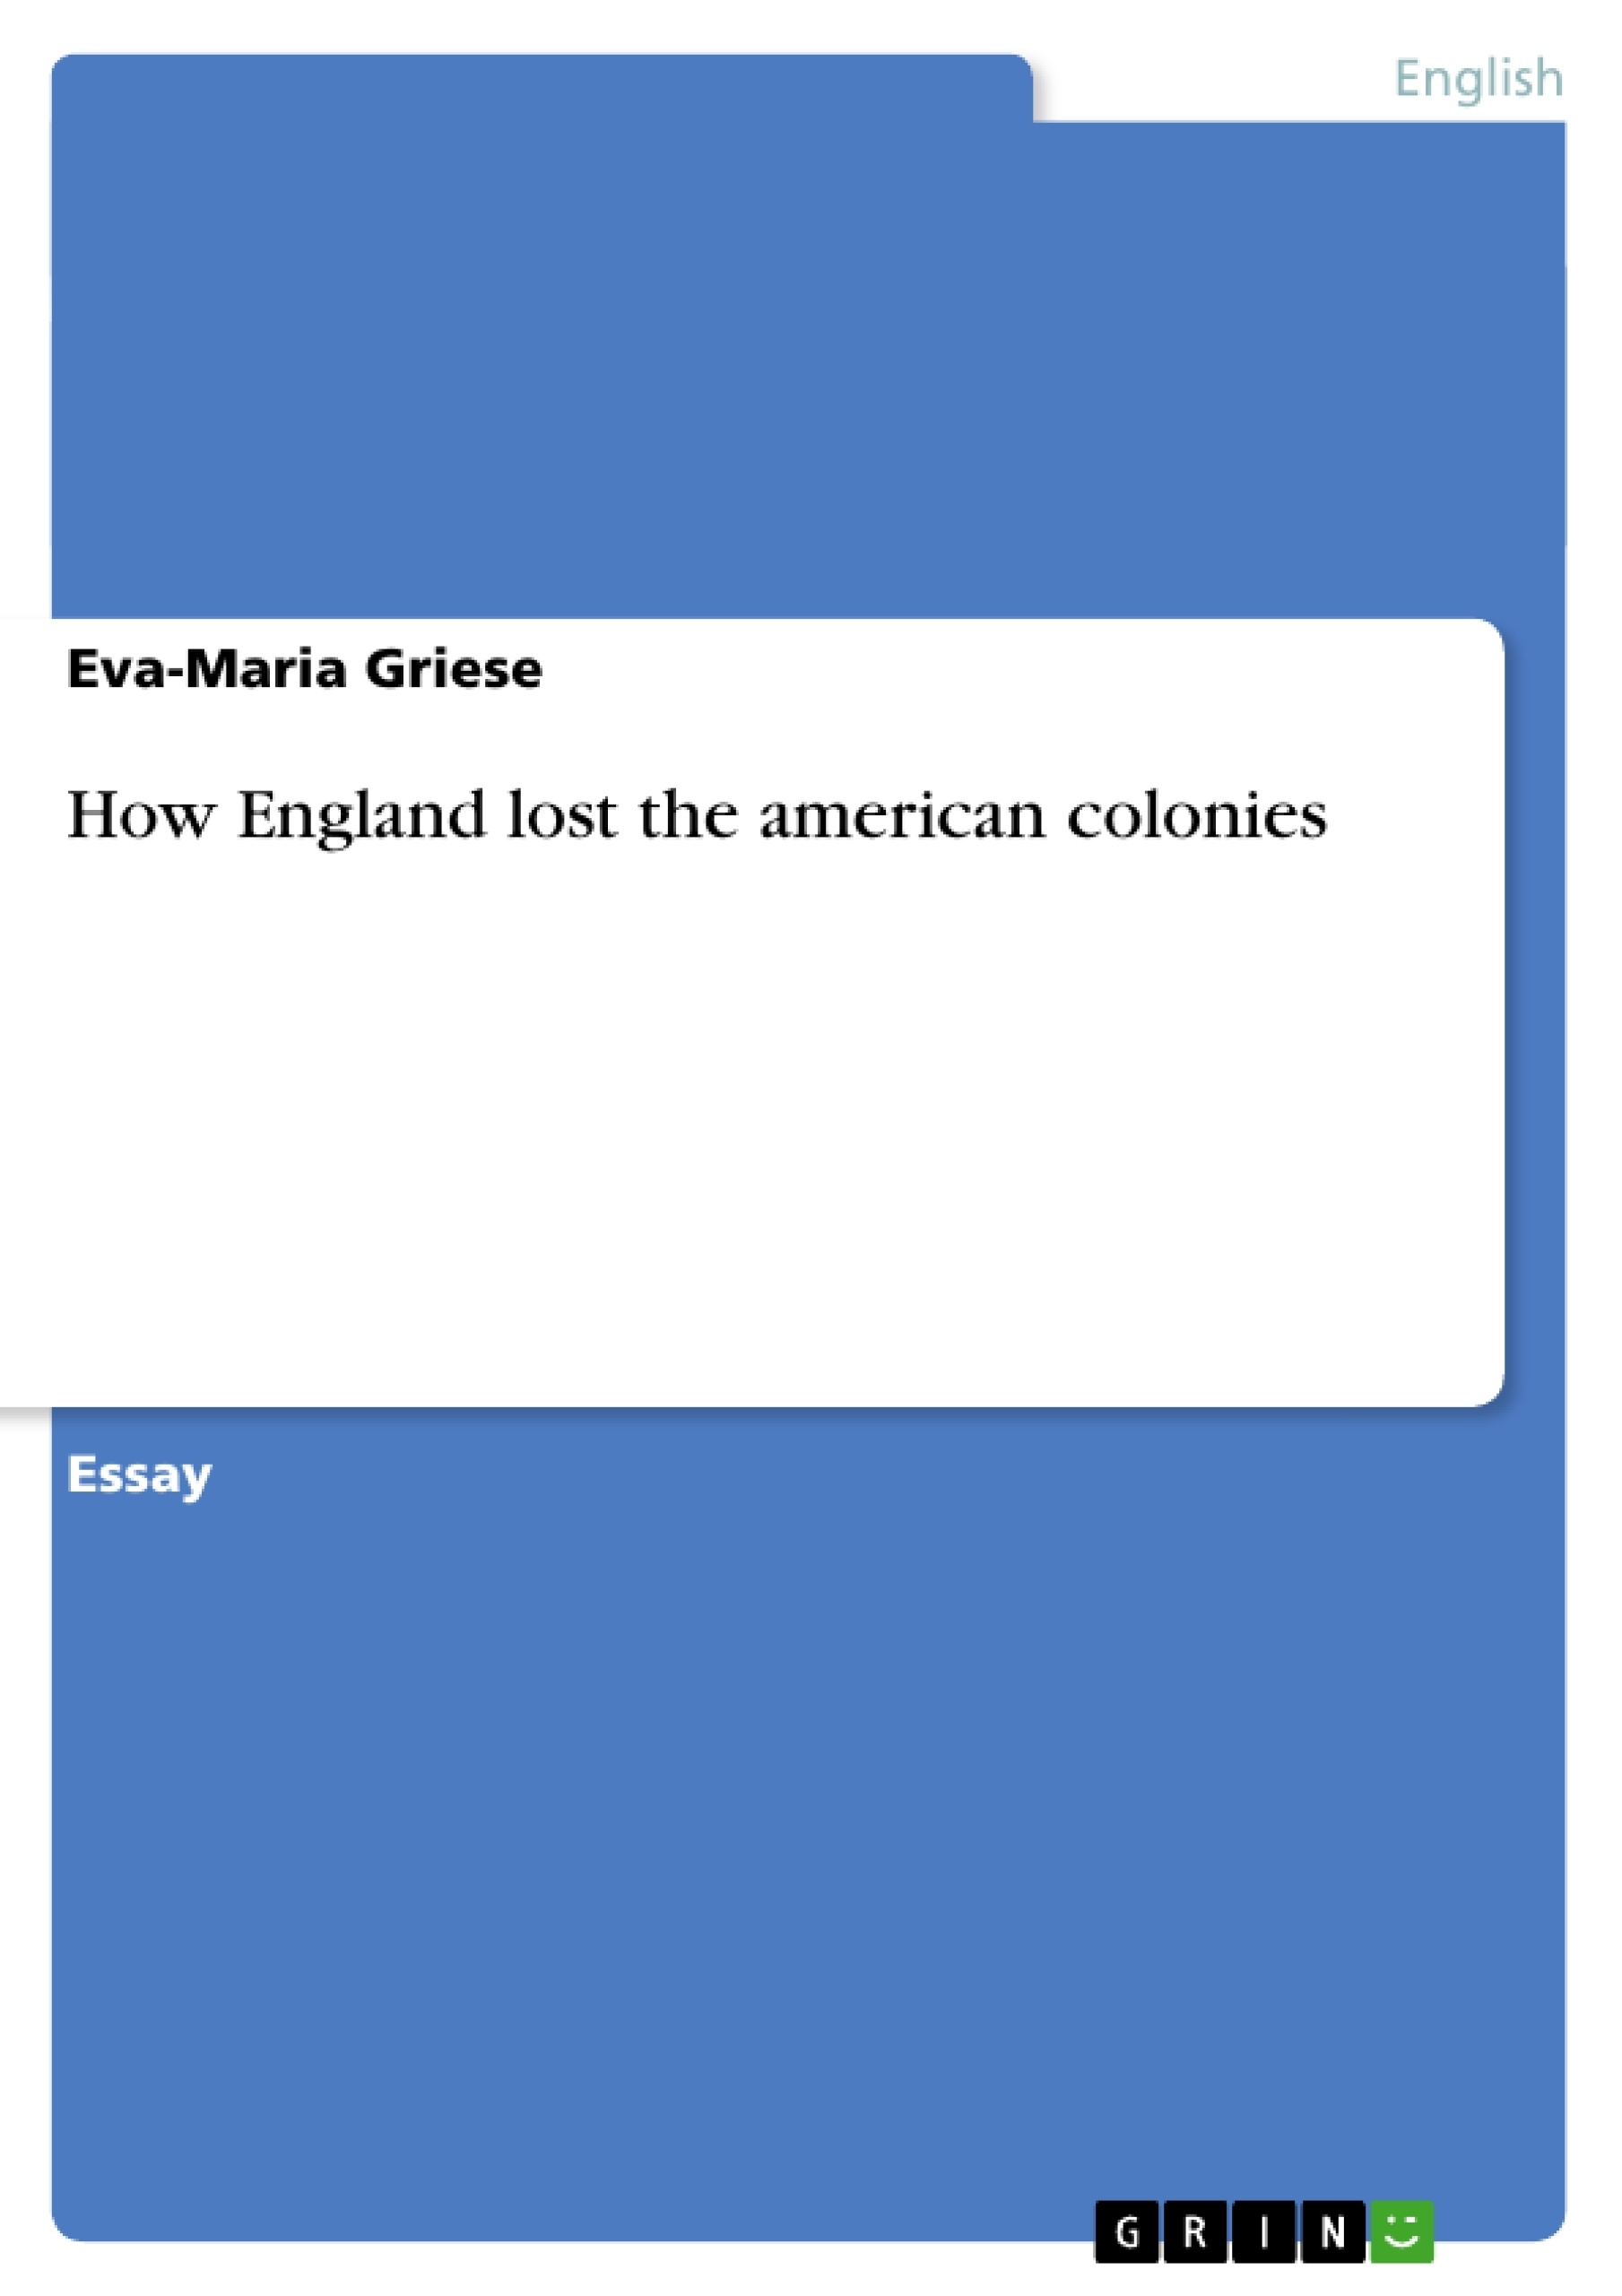 Title: How England lost the american colonies